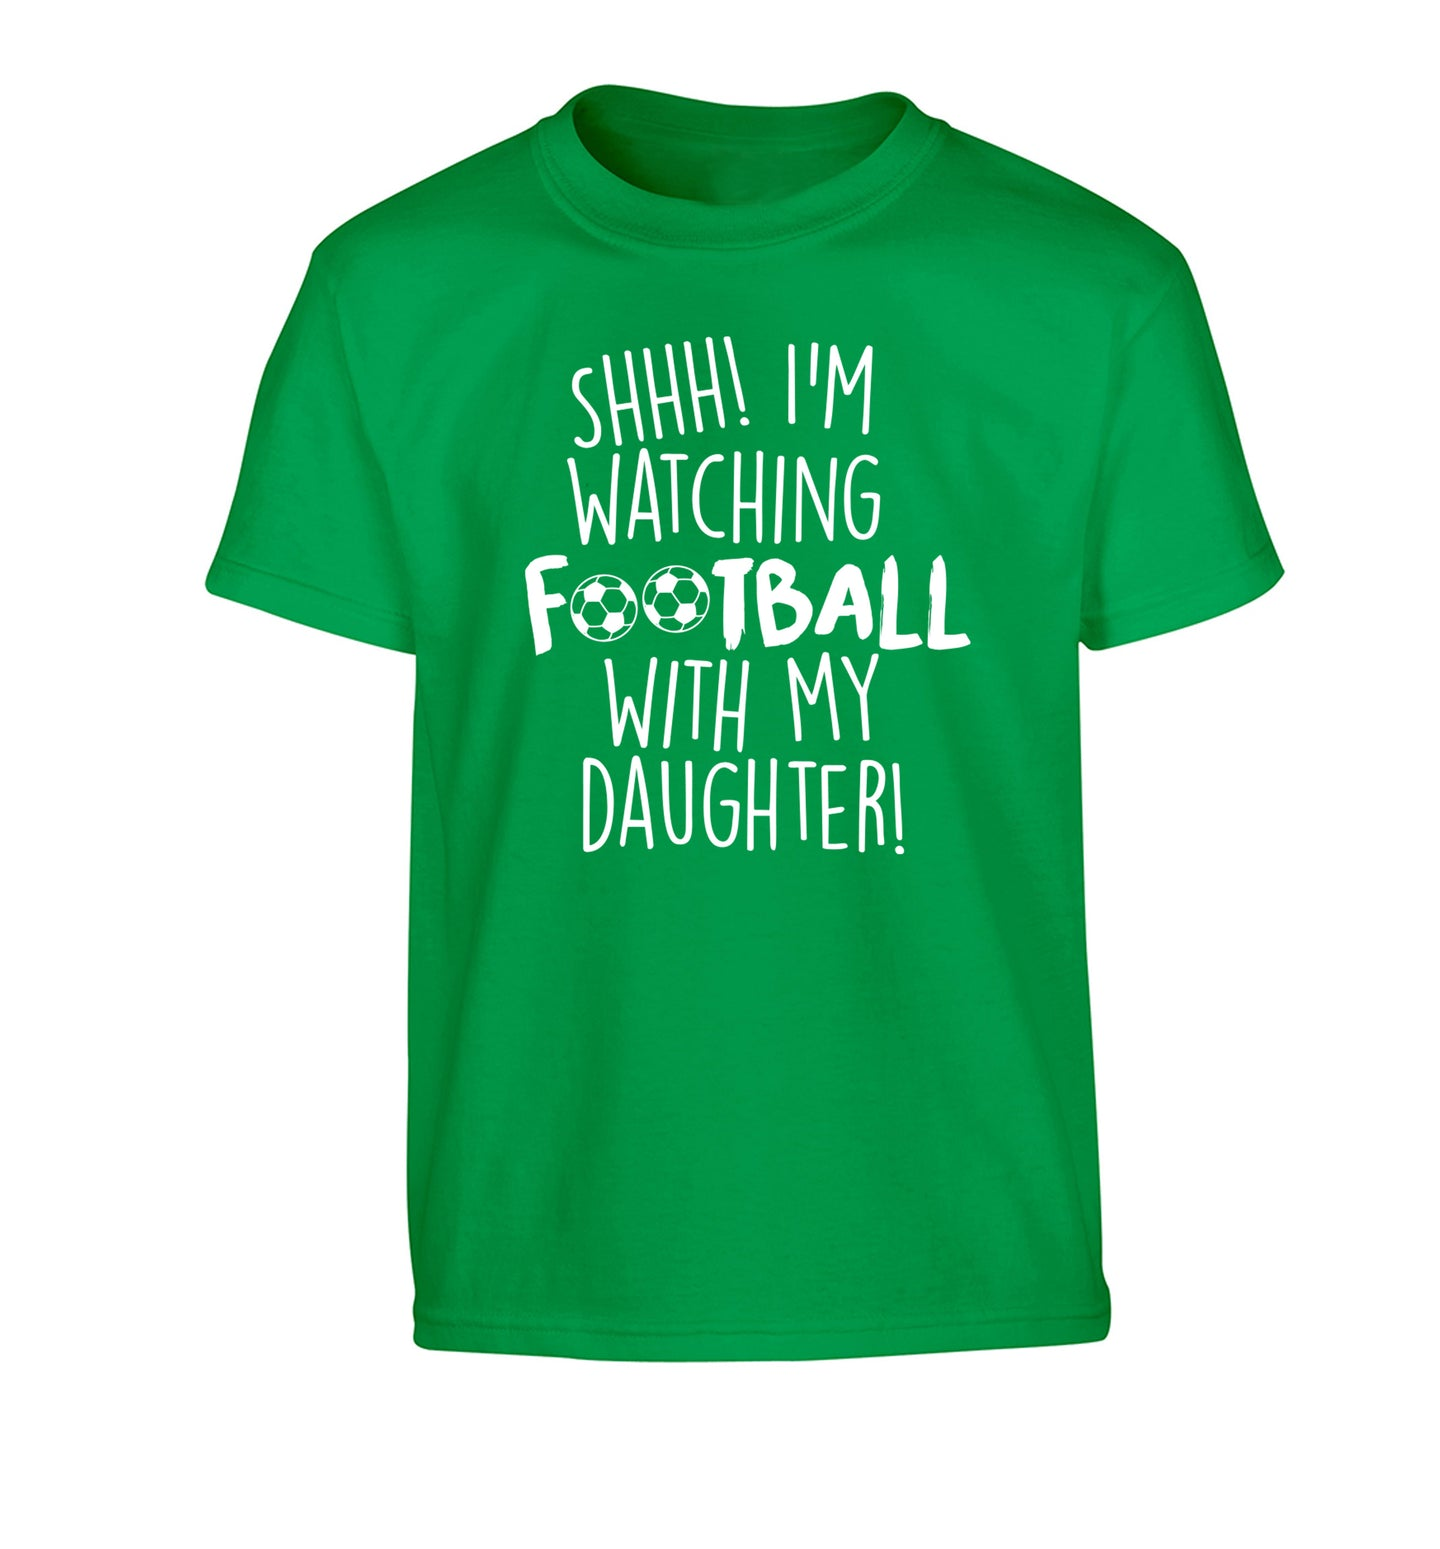 Shhh I'm watching football with my daughter Children's green Tshirt 12-14 Years